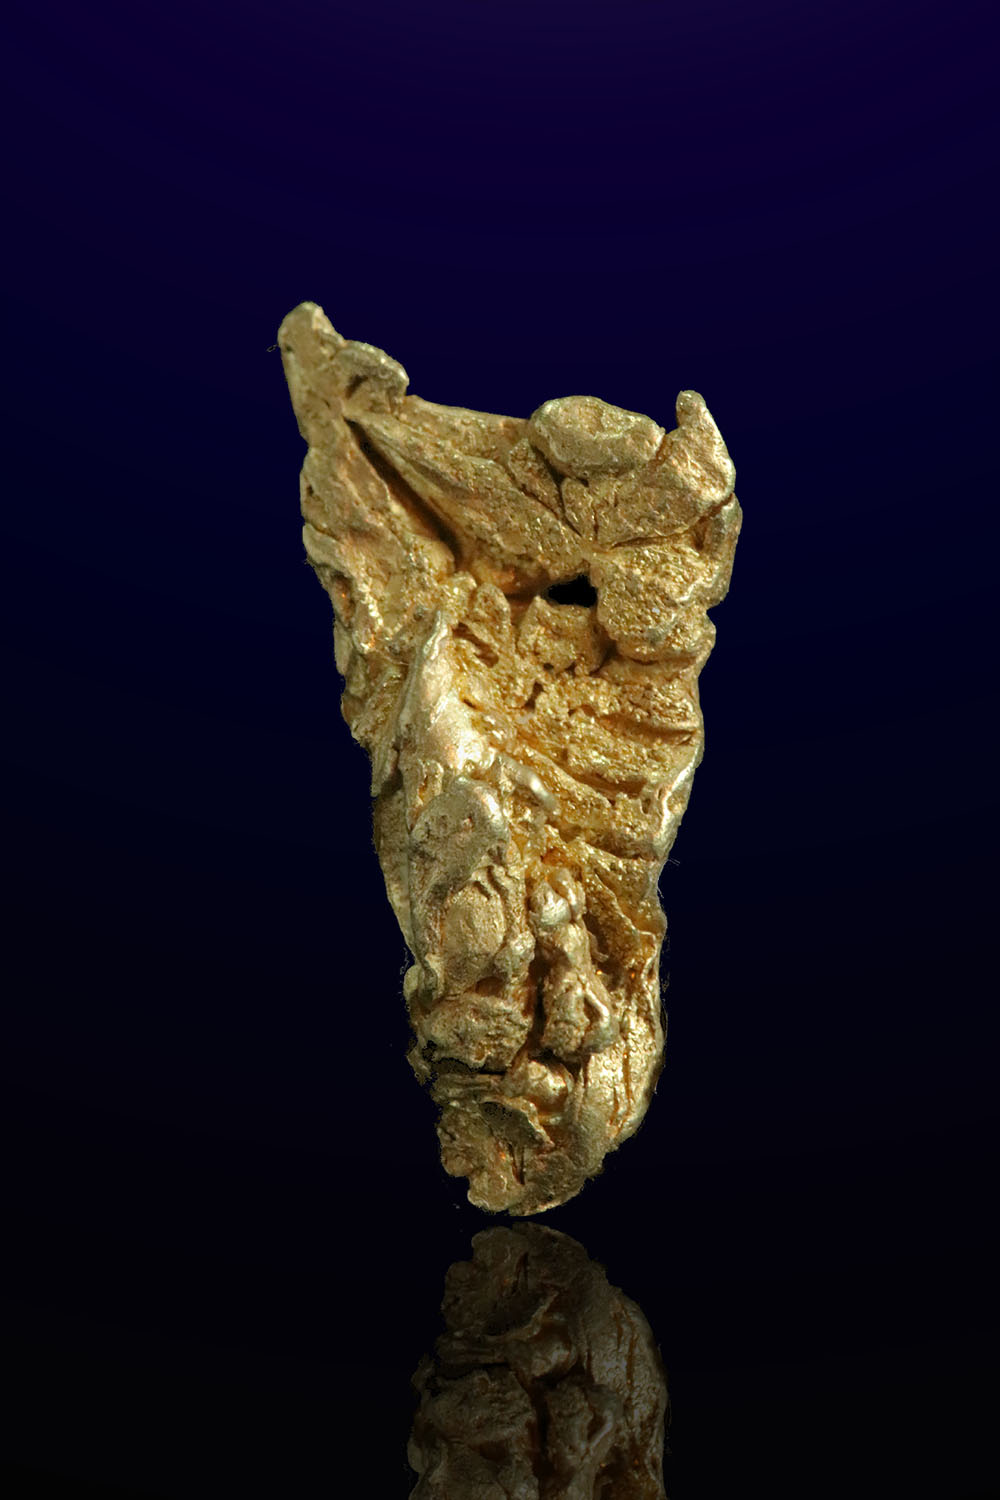 Remarkable Natural Gold Crystal - Mt. Kare, Papua New Guinea